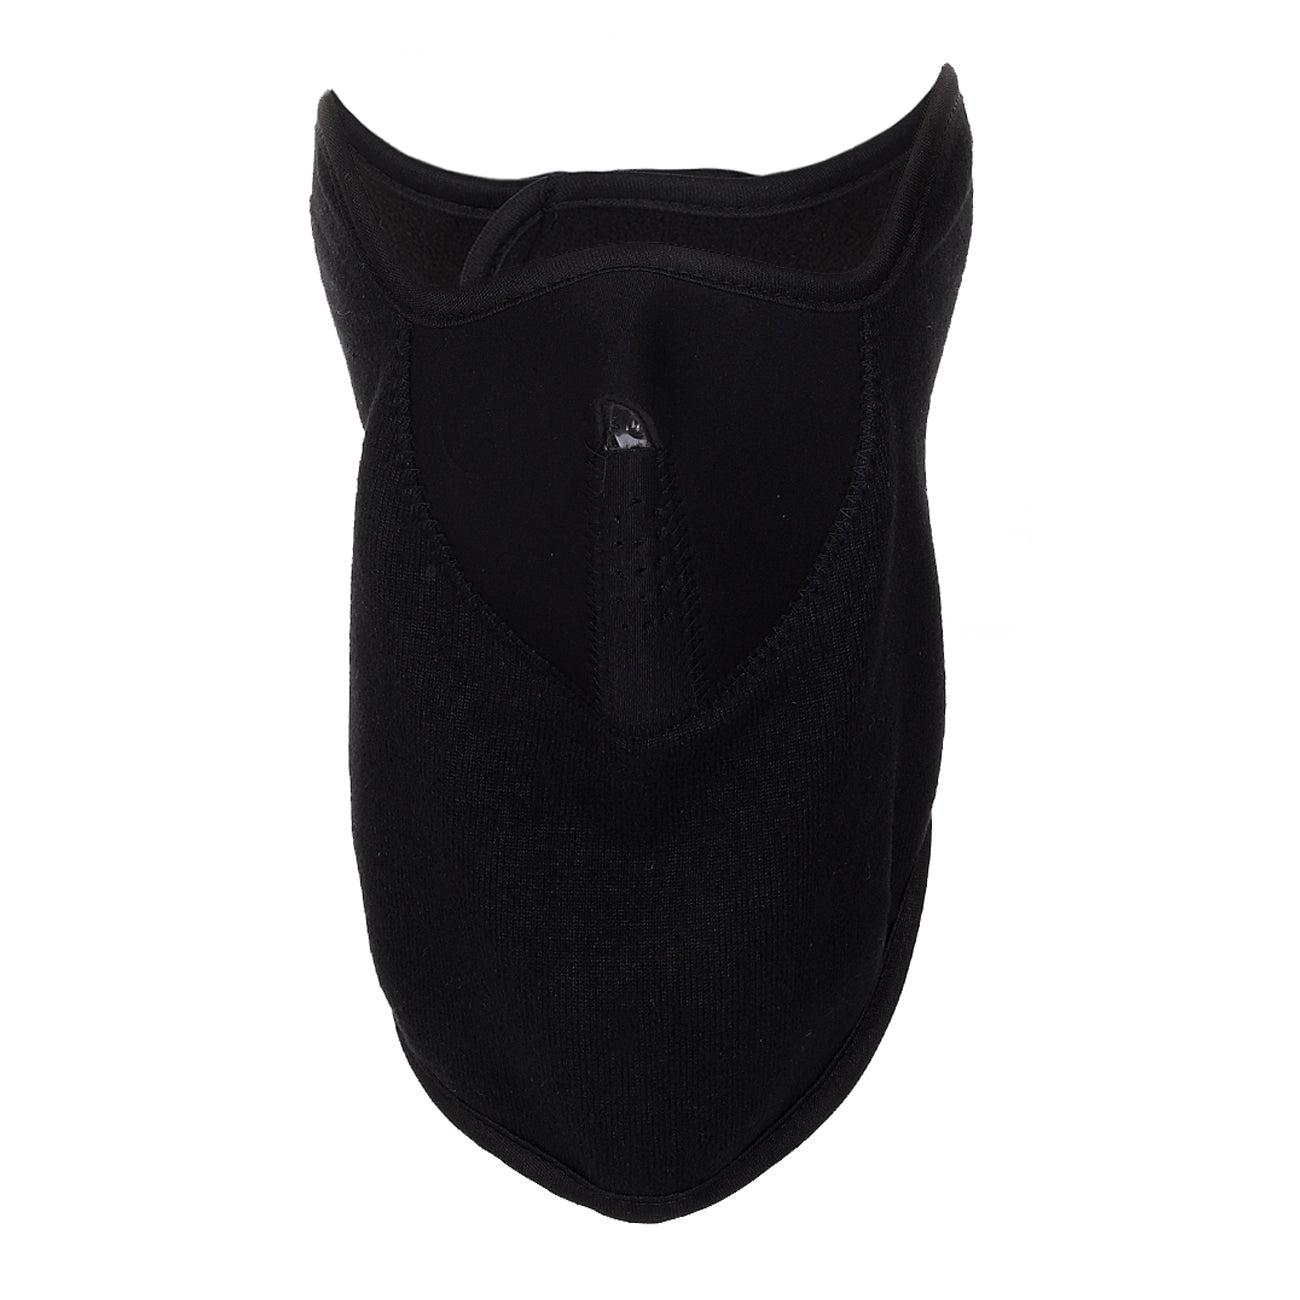 Unisex Thermal Fleece Warm Breathable Full Face Ski Mask